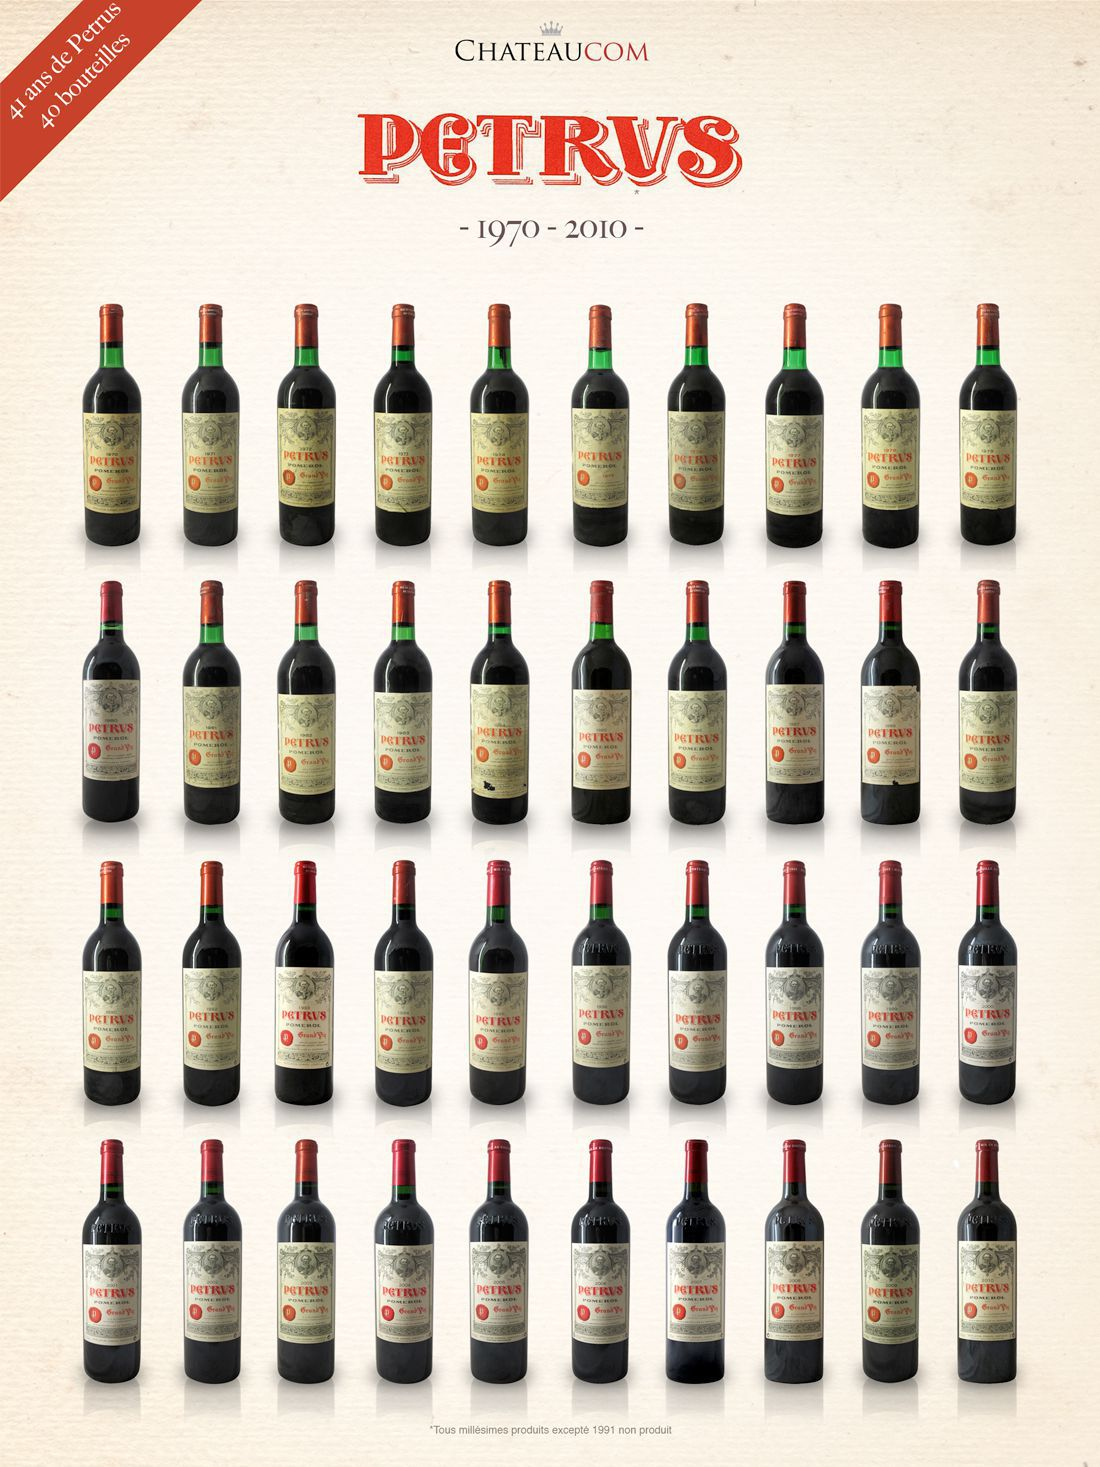 Collection Petrus 1970-2010